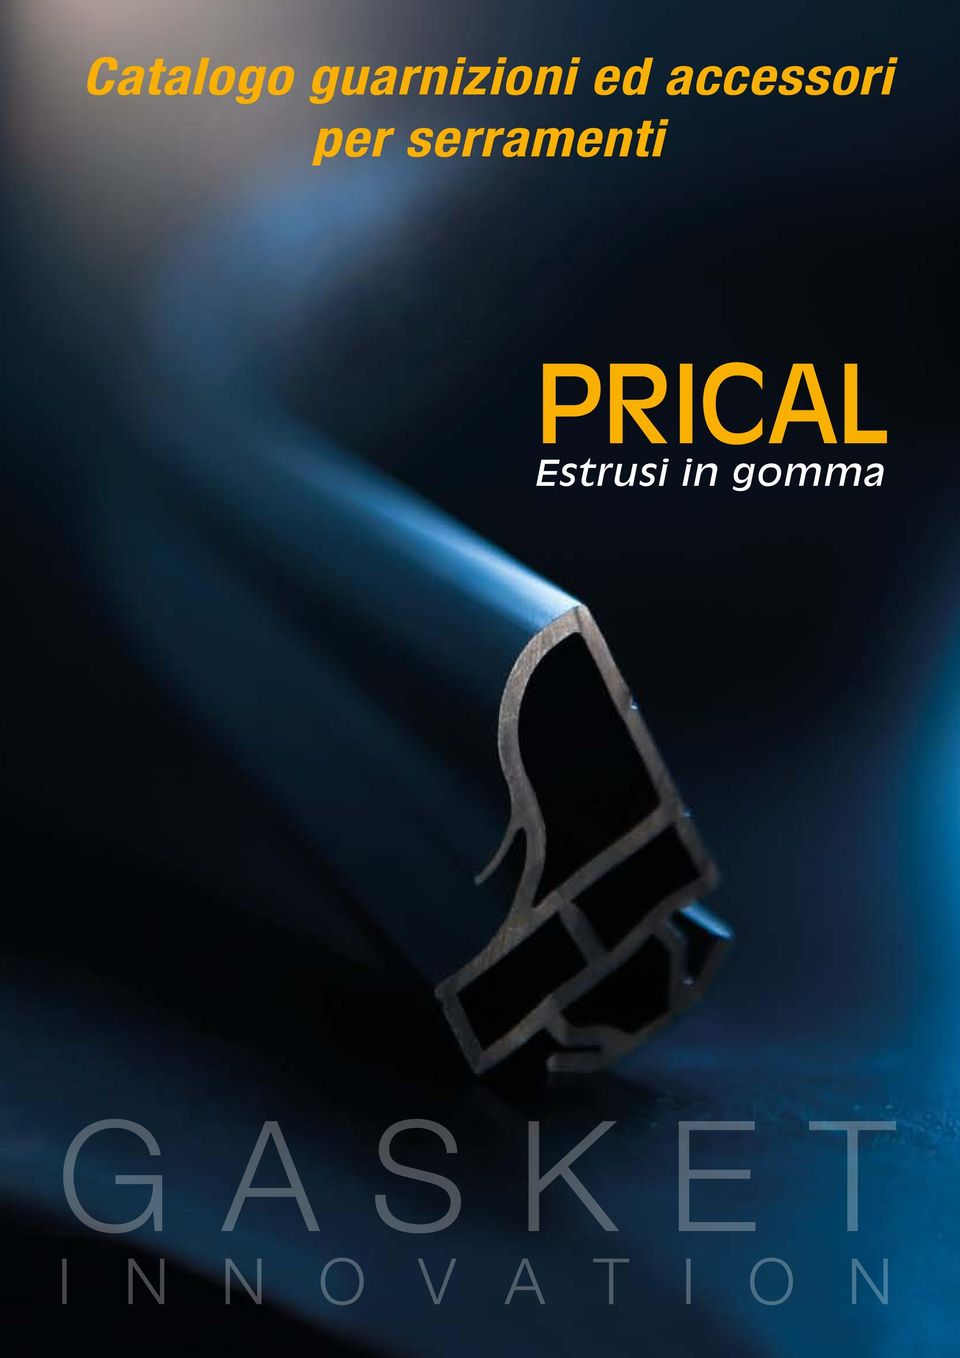 PRICAL Estrusi in gomma